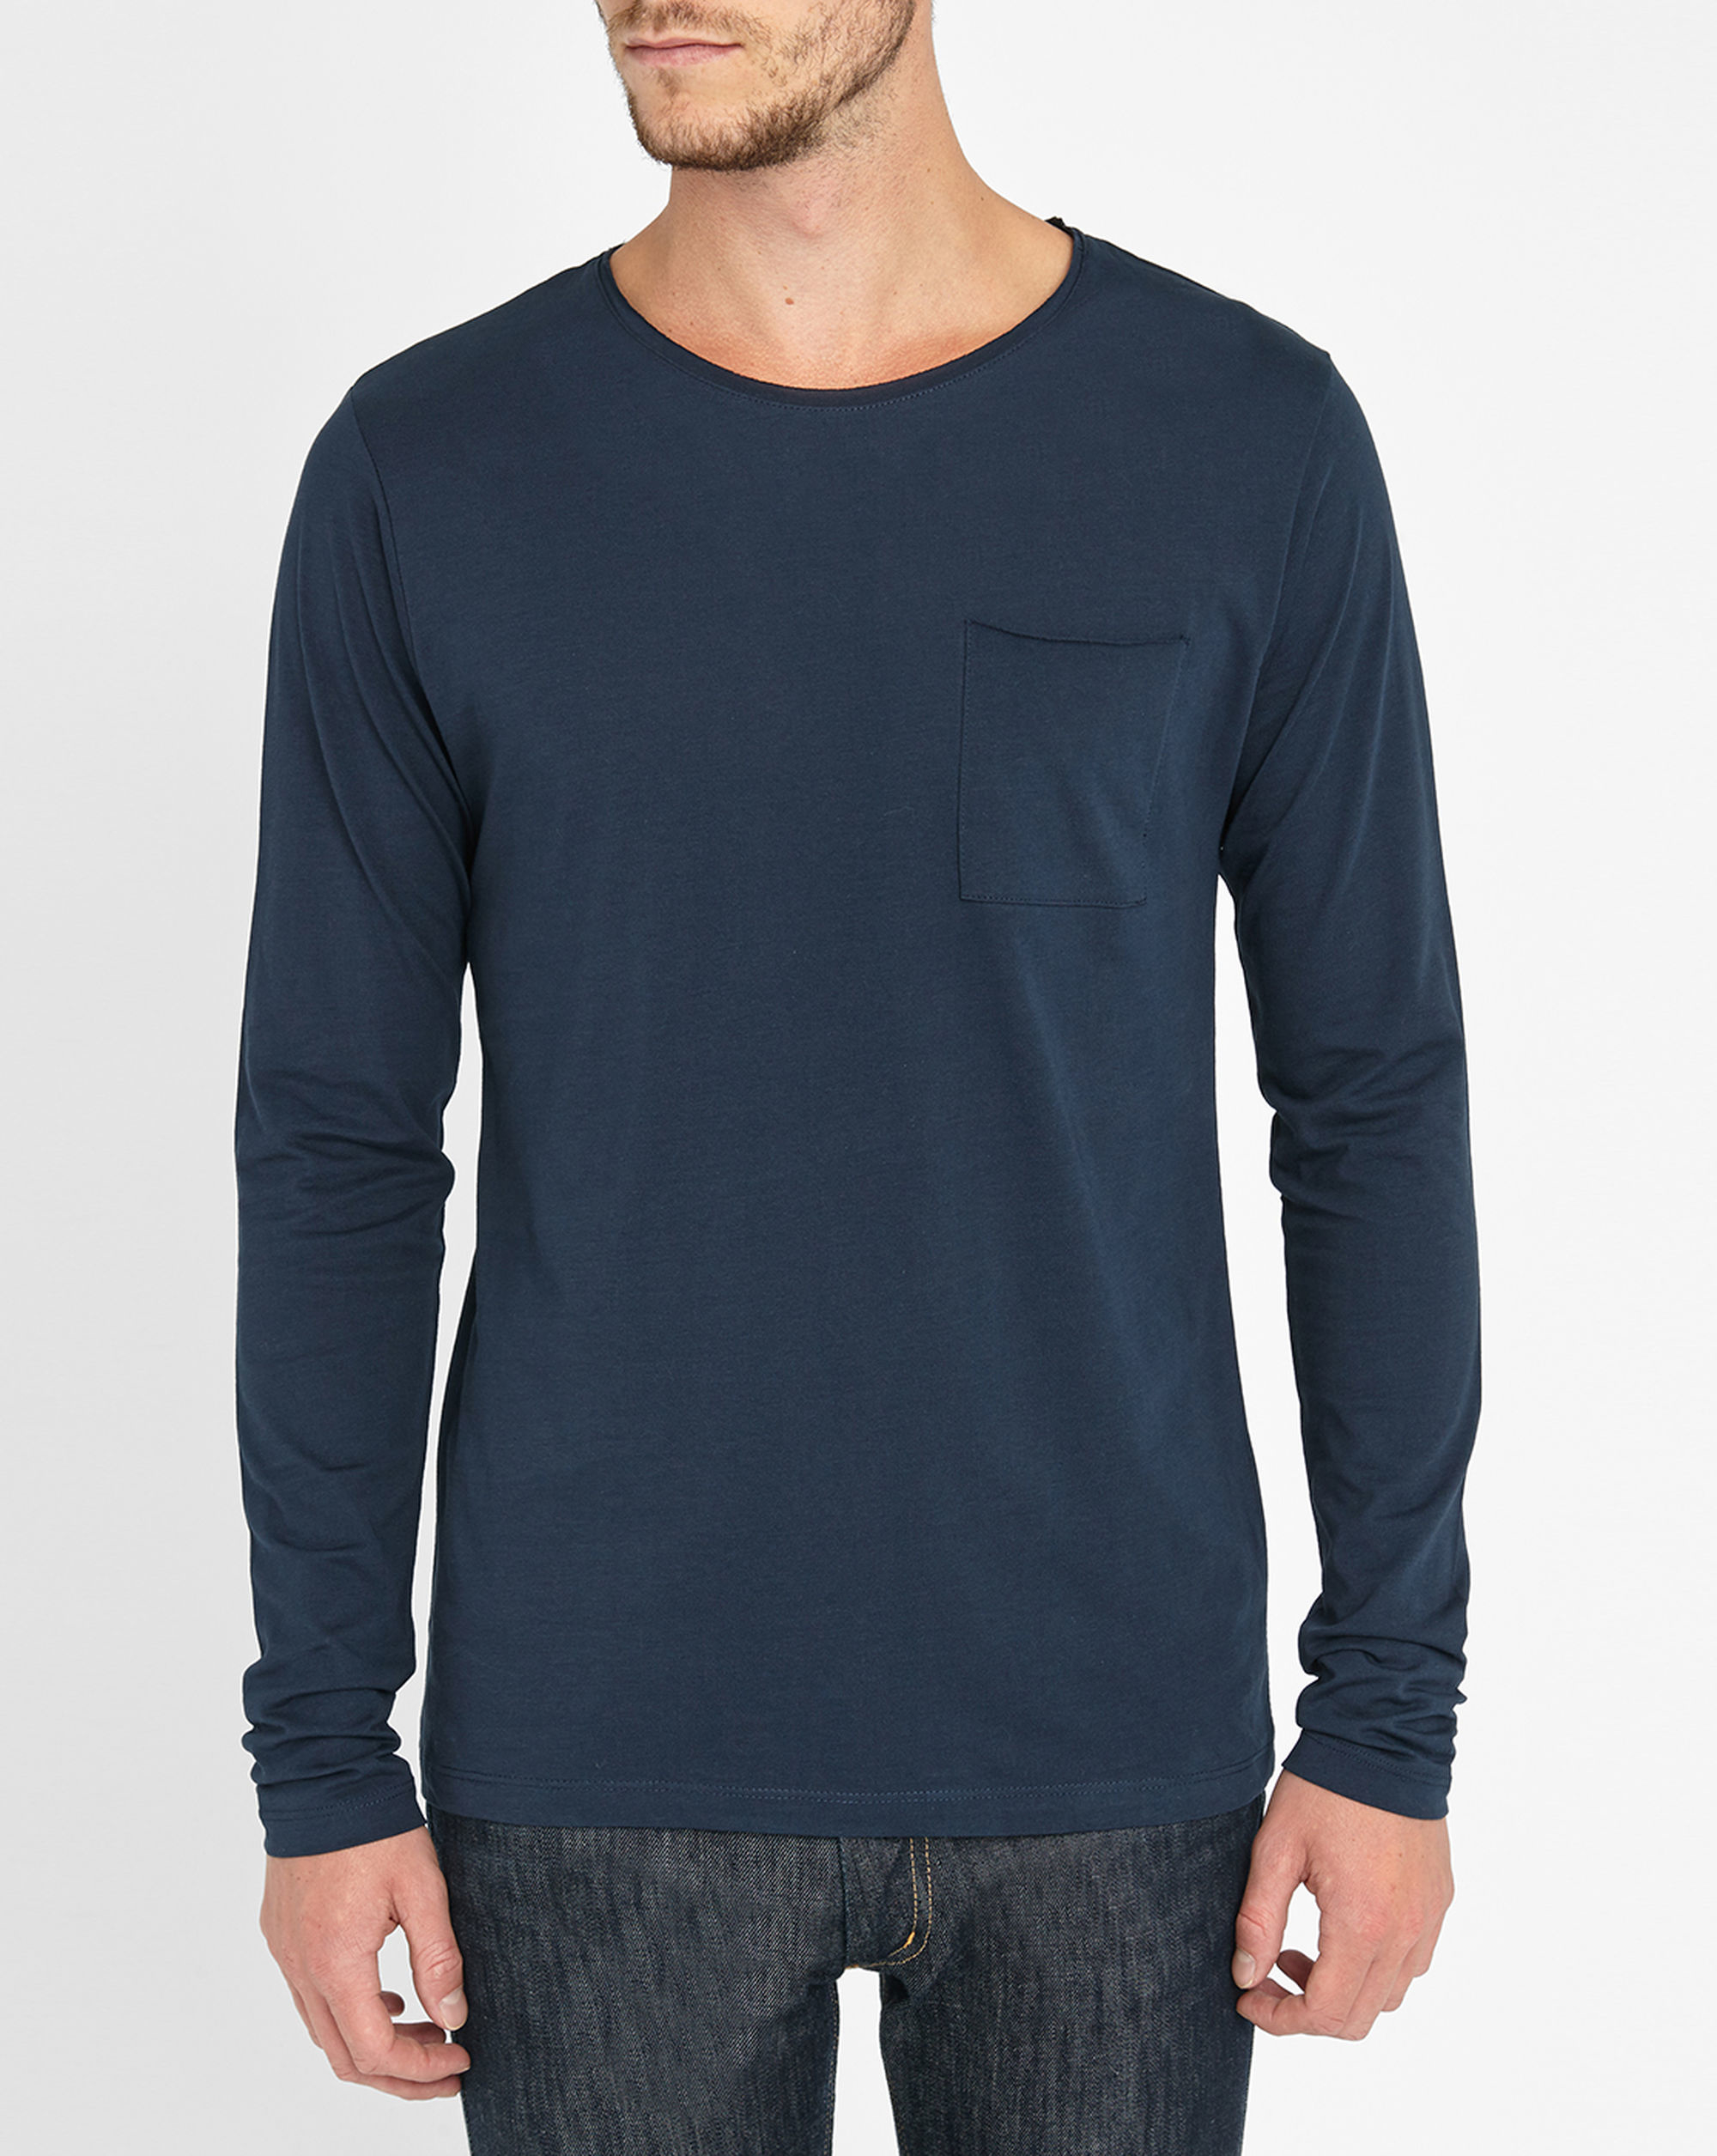 Selected Navy Shpimaflorence Long Sleeve Round Neck Patch